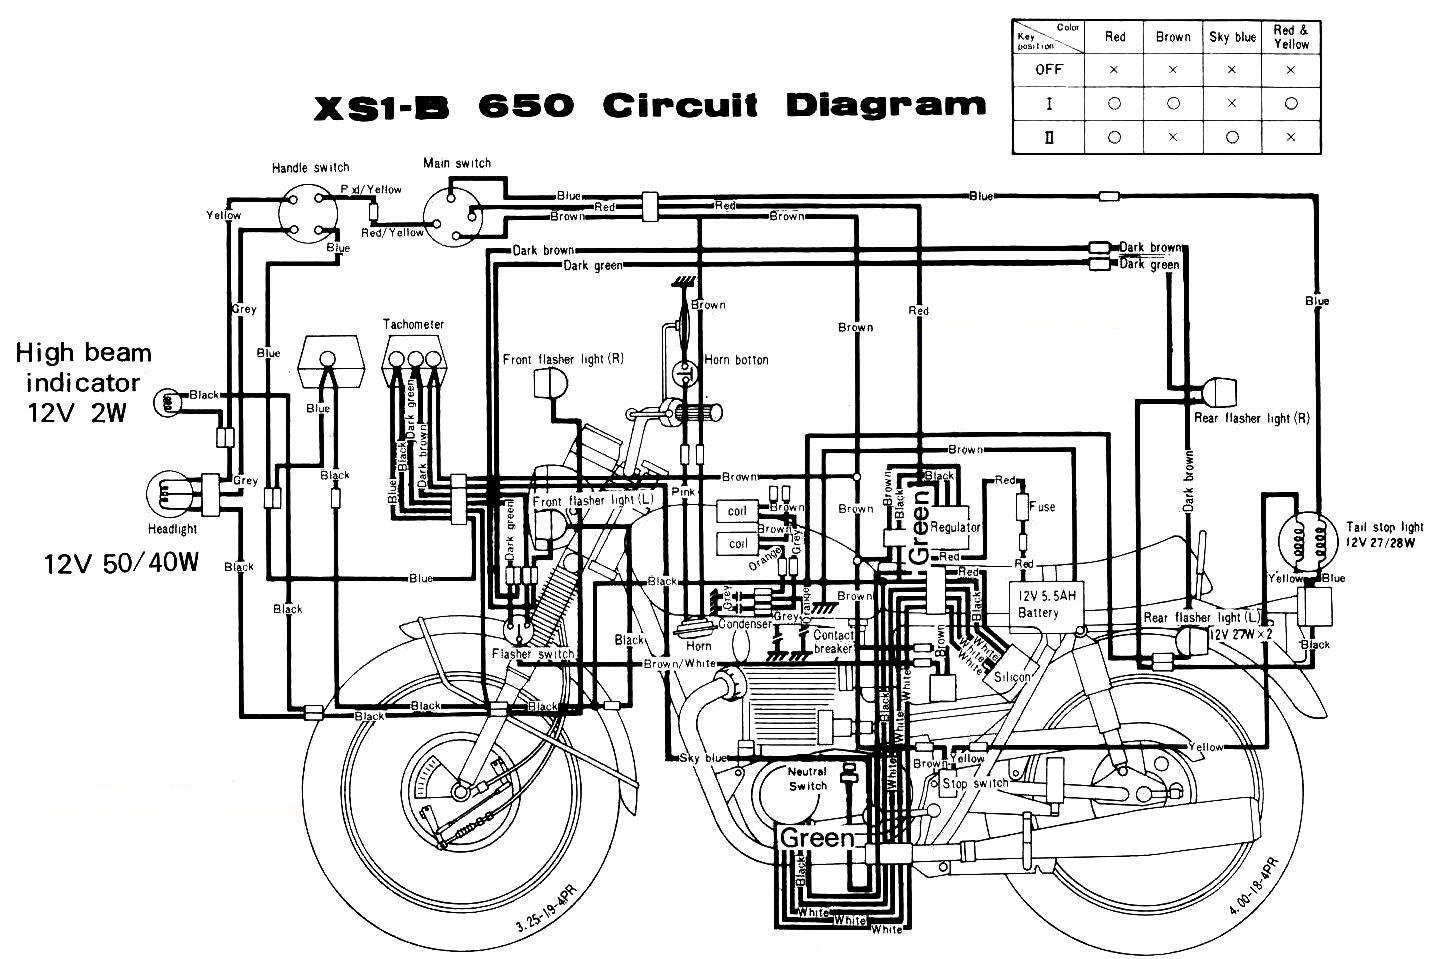 can someone please send a wiring diagram for a 1971 yamaha 650 xs rh justanswer com Air Conditioner Schematic Wiring Diagram Simple Wiring Schematics